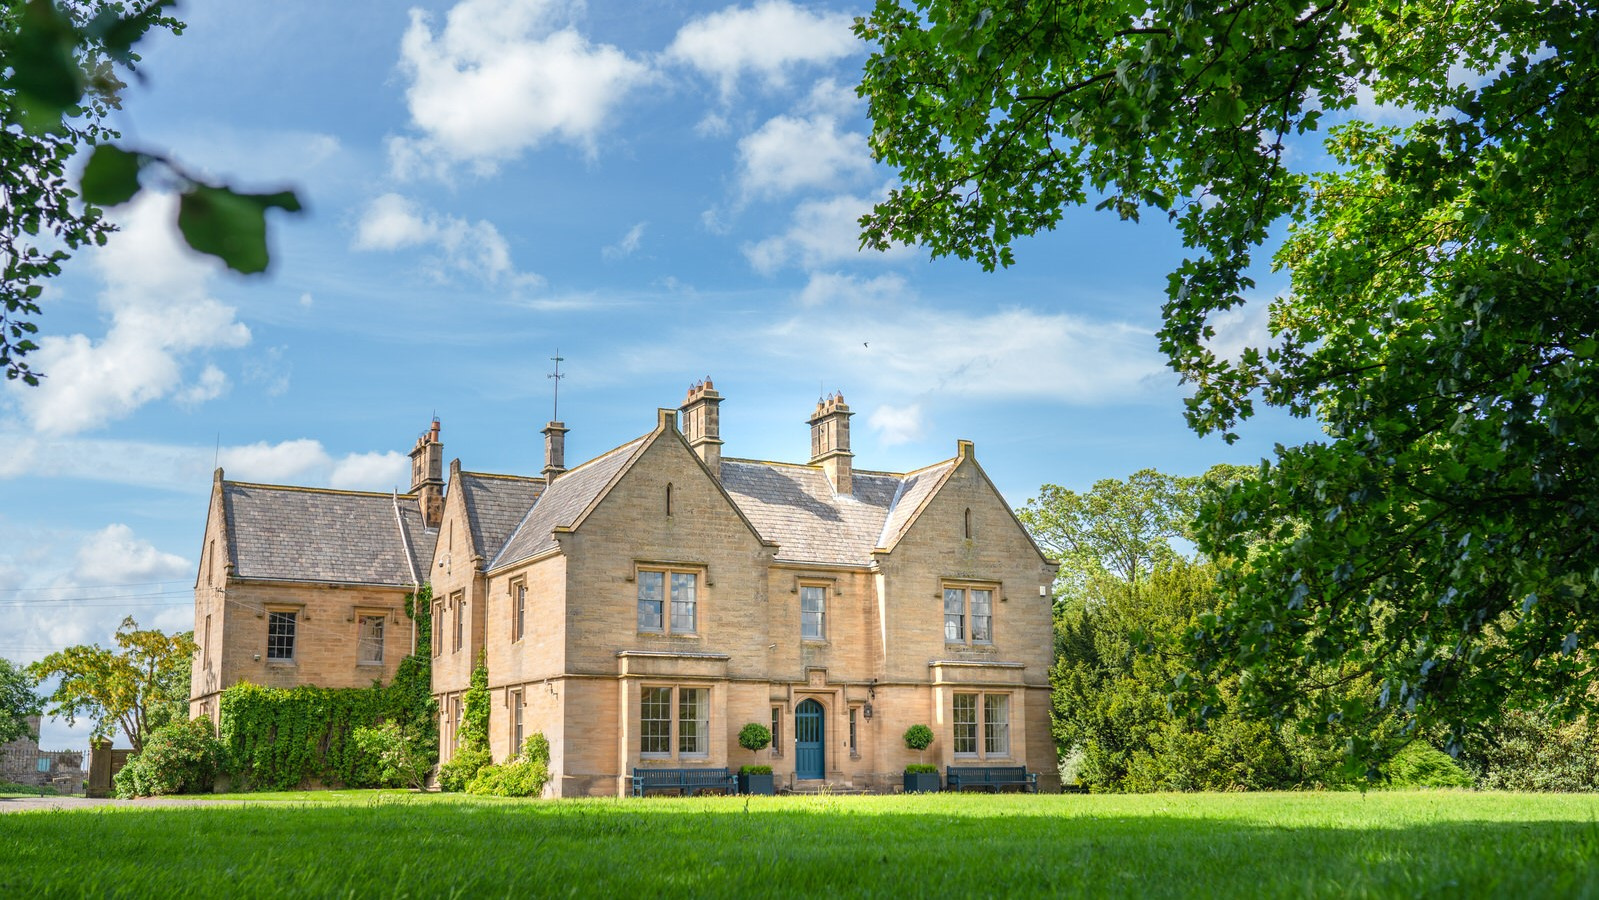 Healey Hall & Cottages - NORTHUMBERLAND, NE44 6BHLocated one mile from Healey Barn, Healey Hall & its adjoining cottages can accommodate up to 34 people in 17 luxurious bedrooms.